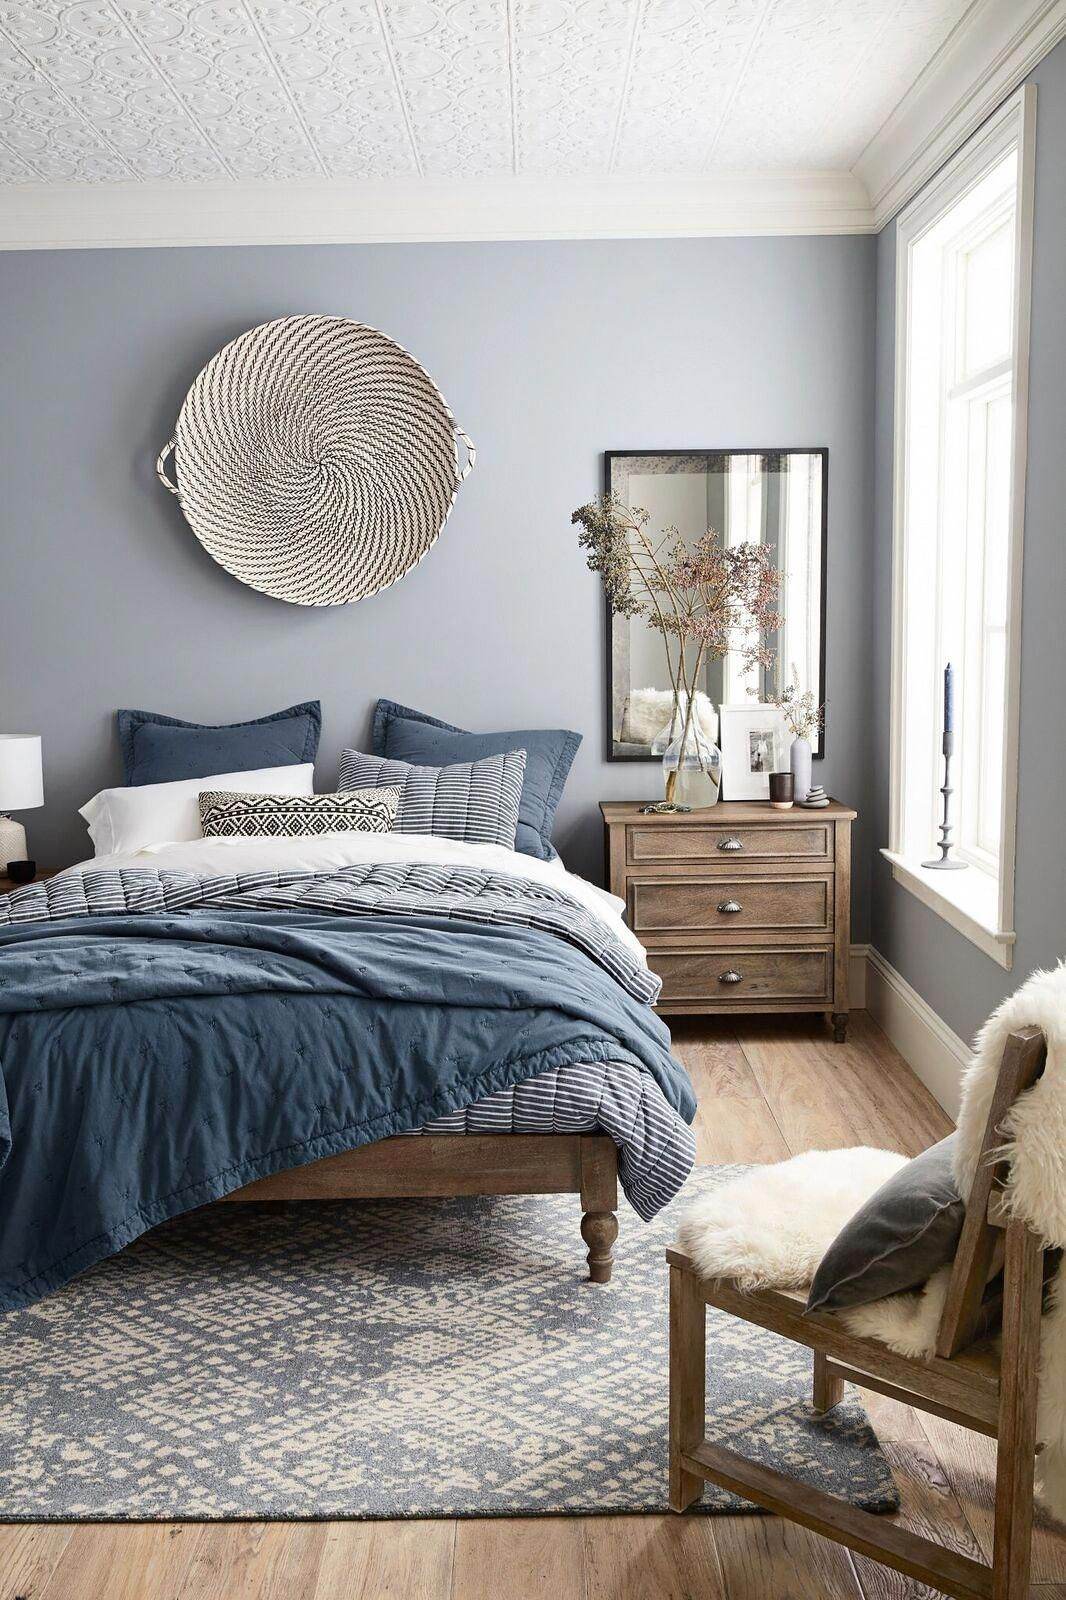 Your Bedroom Needs To Be Cozy And Inspiring So Minimalist Our Contemporary Here You Find A Master Bedrooms Decor Master Bedroom Interior Small Master Bedroom